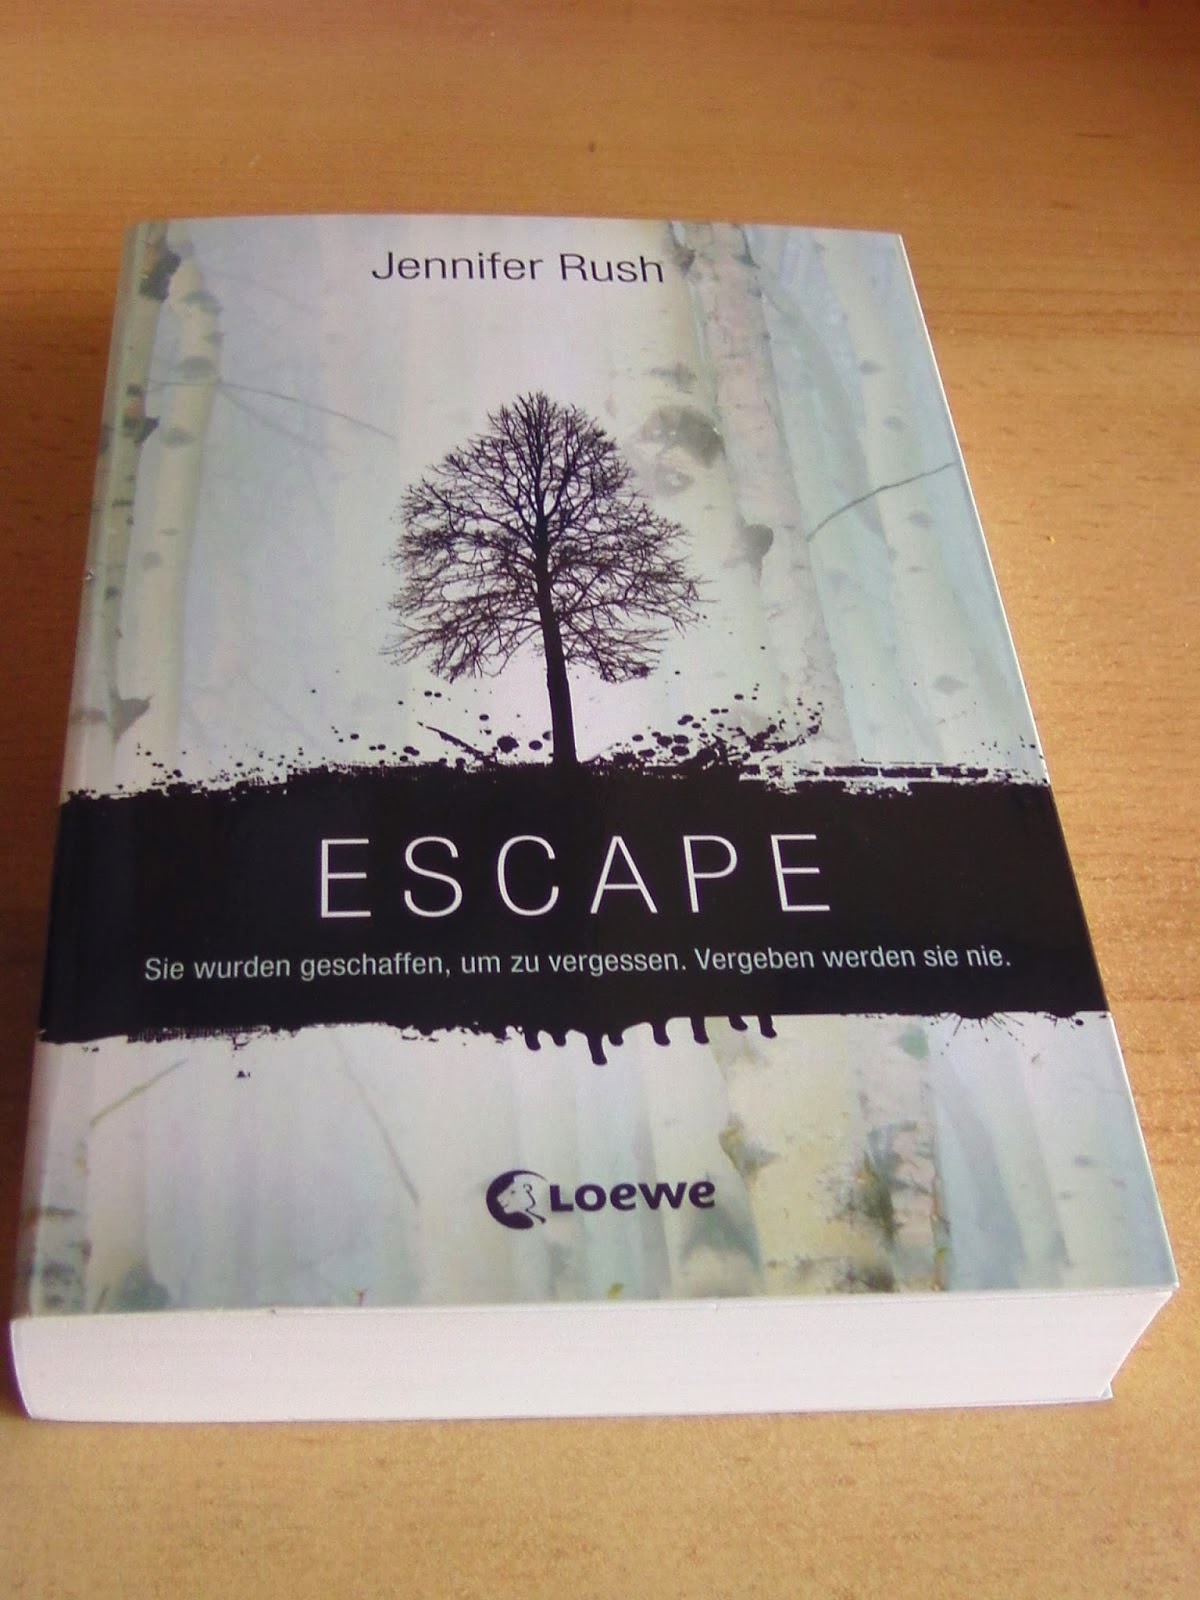 http://www.amazon.de/Escape-Jennifer-Rush/dp/3785575165/ref=sr_1_1?s=books&ie=UTF8&qid=1424981920&sr=1-1&keywords=escape